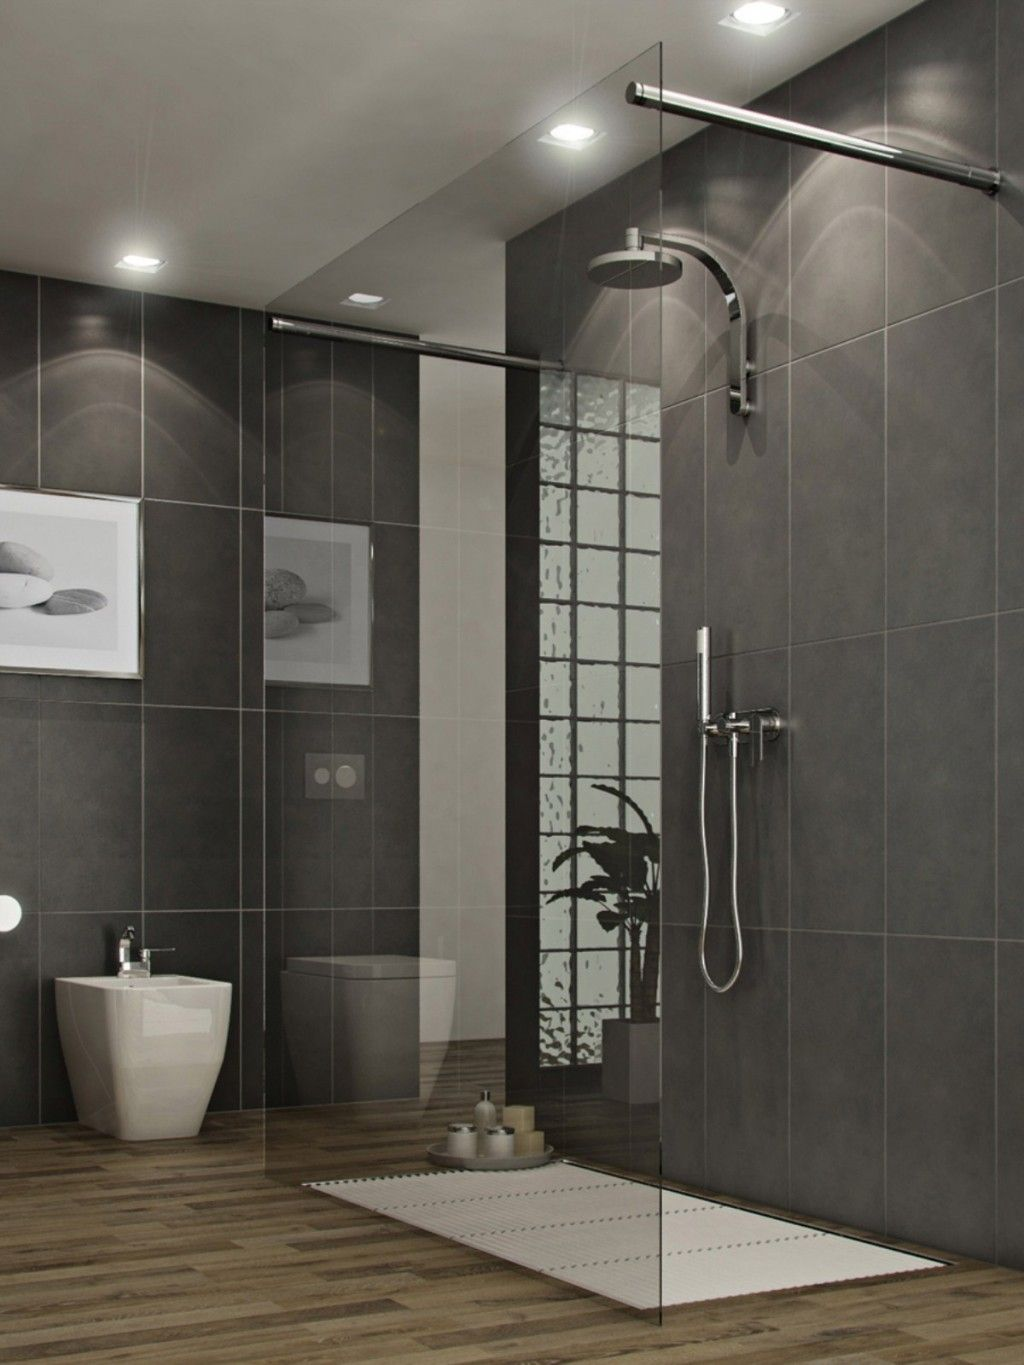 excellent ideas japanese bathroom design modern home | Alluring Freestanding Bathroom Excellent Modern Japanese ...